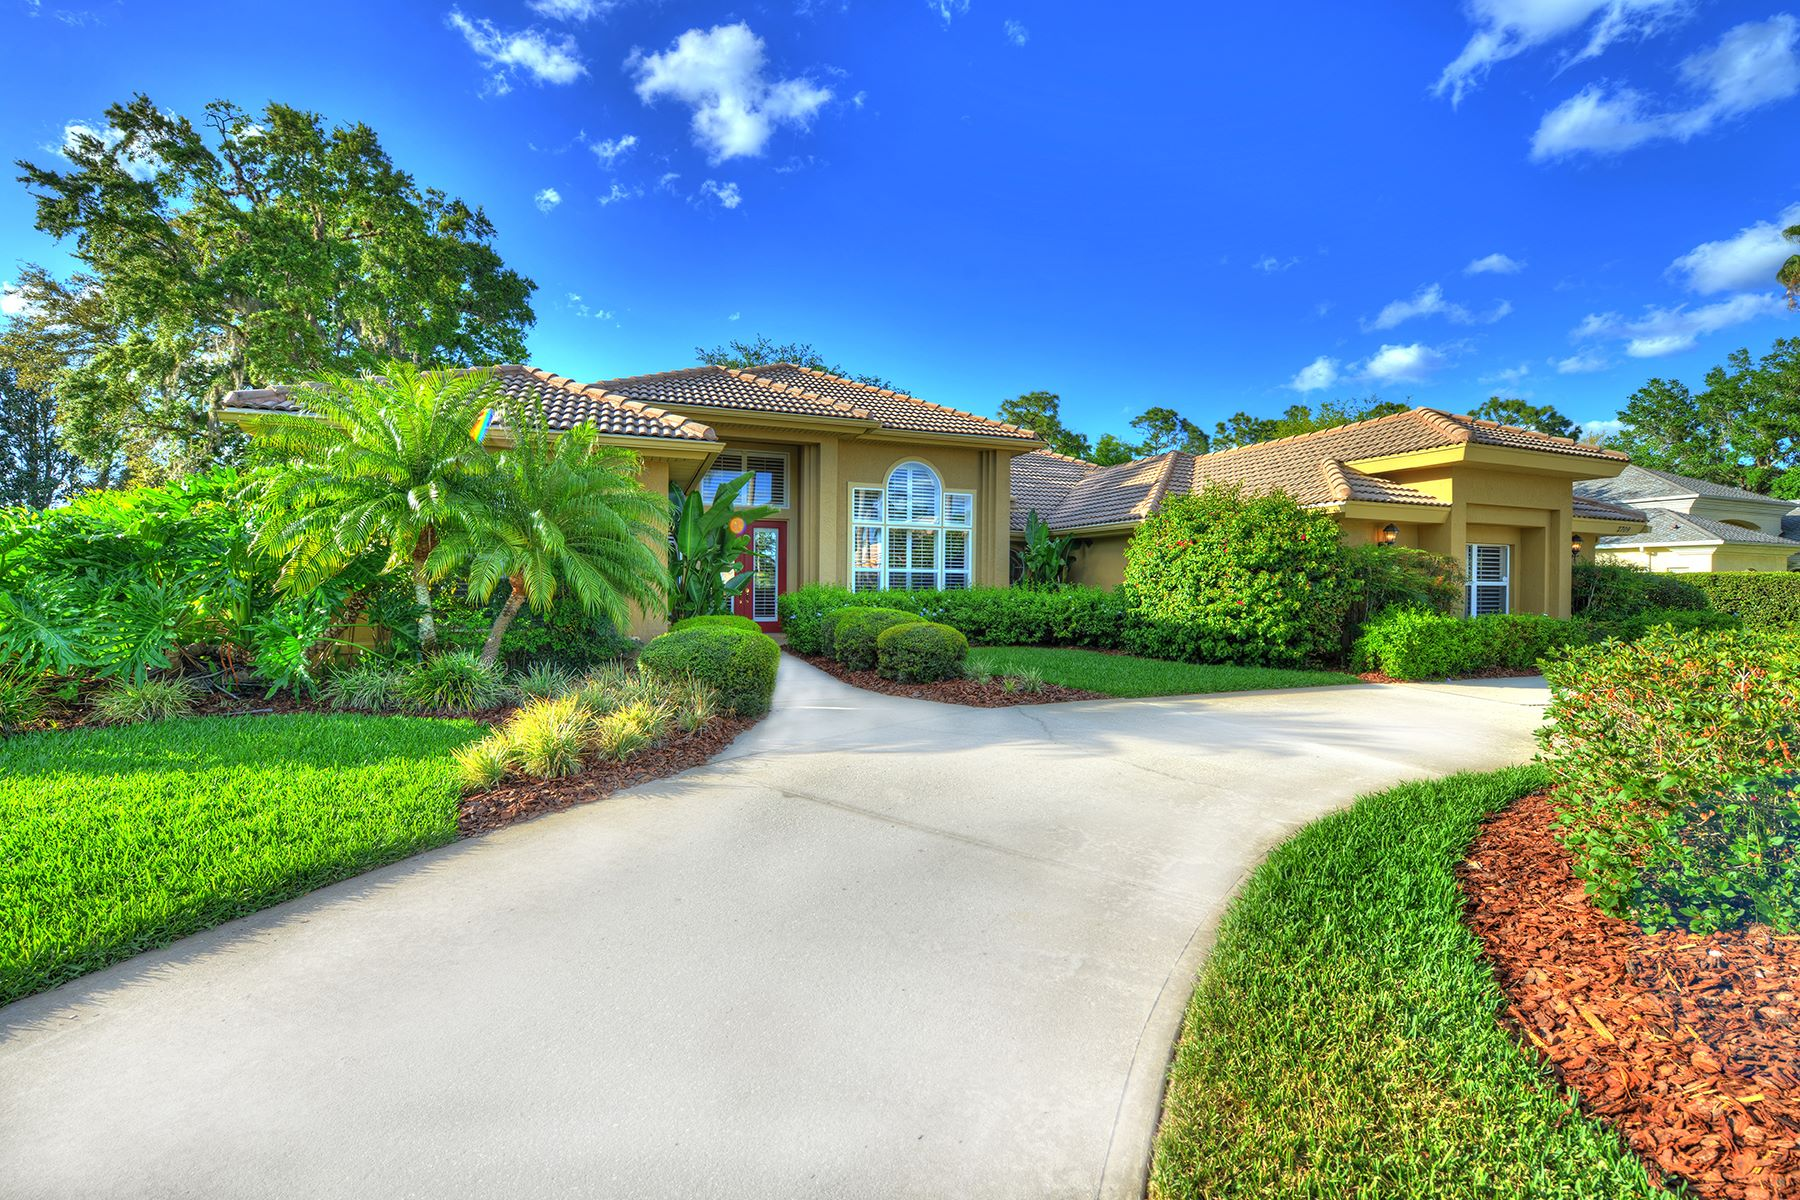 Single Family Home for Sale at SPRUCE CREEK AND THE BEACHES 2709 Autumn Leaves Dr Port Orange, Florida, 32128 United States